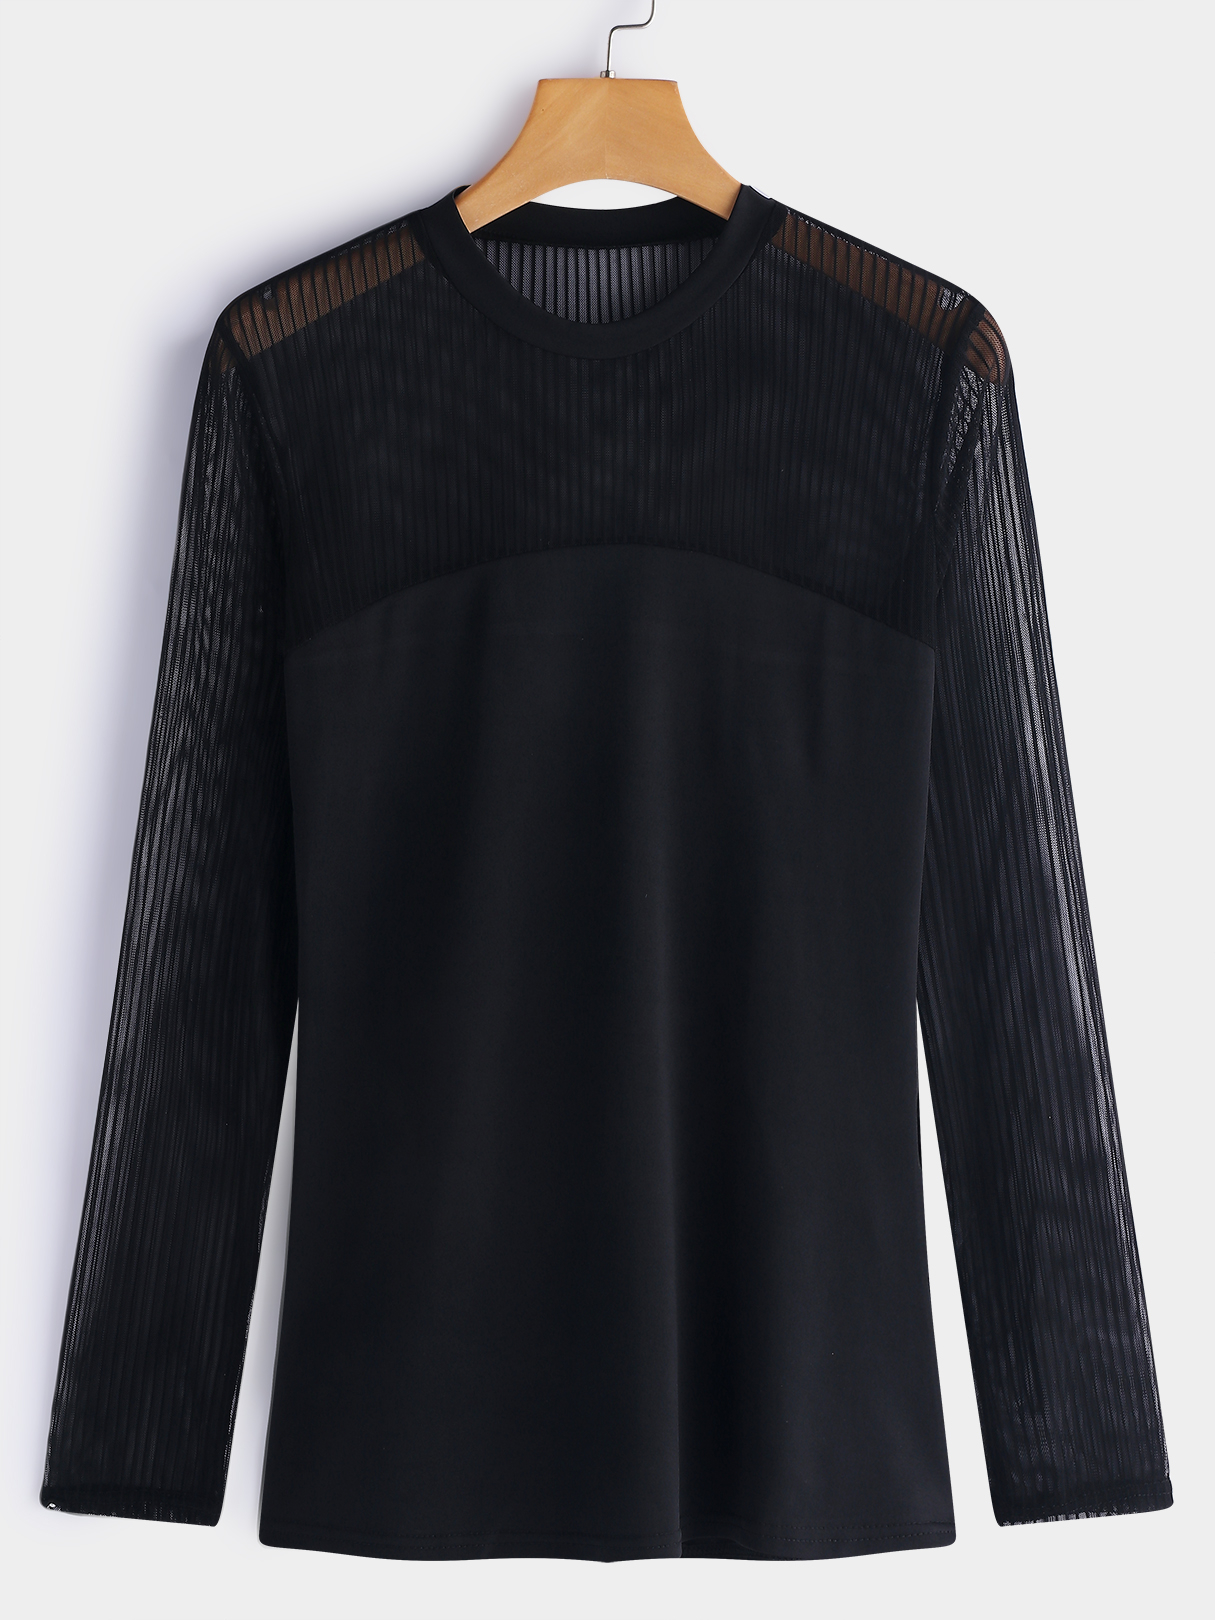 Black Lace Details Crew Neck Long Sleeves T-shirts grey stripe details crew neck long sleeves t shirt